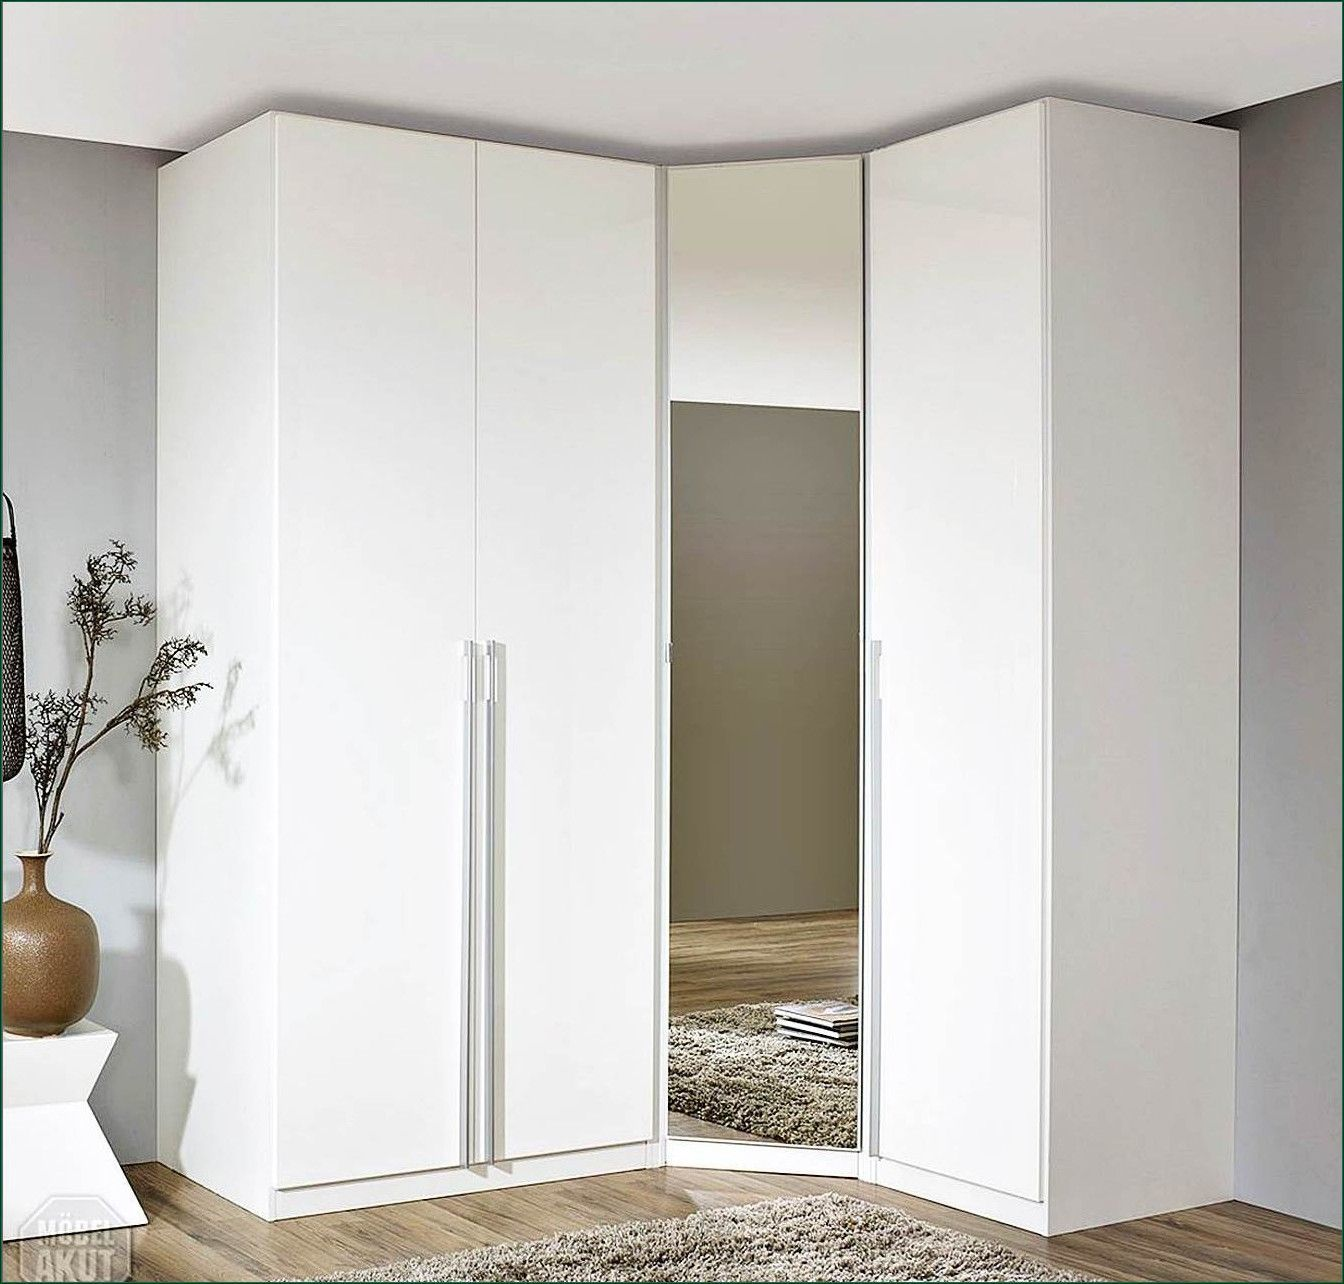 Eckschrank Schlafzimmer Ikea Wardrobe Design Bedroom Fitted Wardrobes Bedroom Closet Design